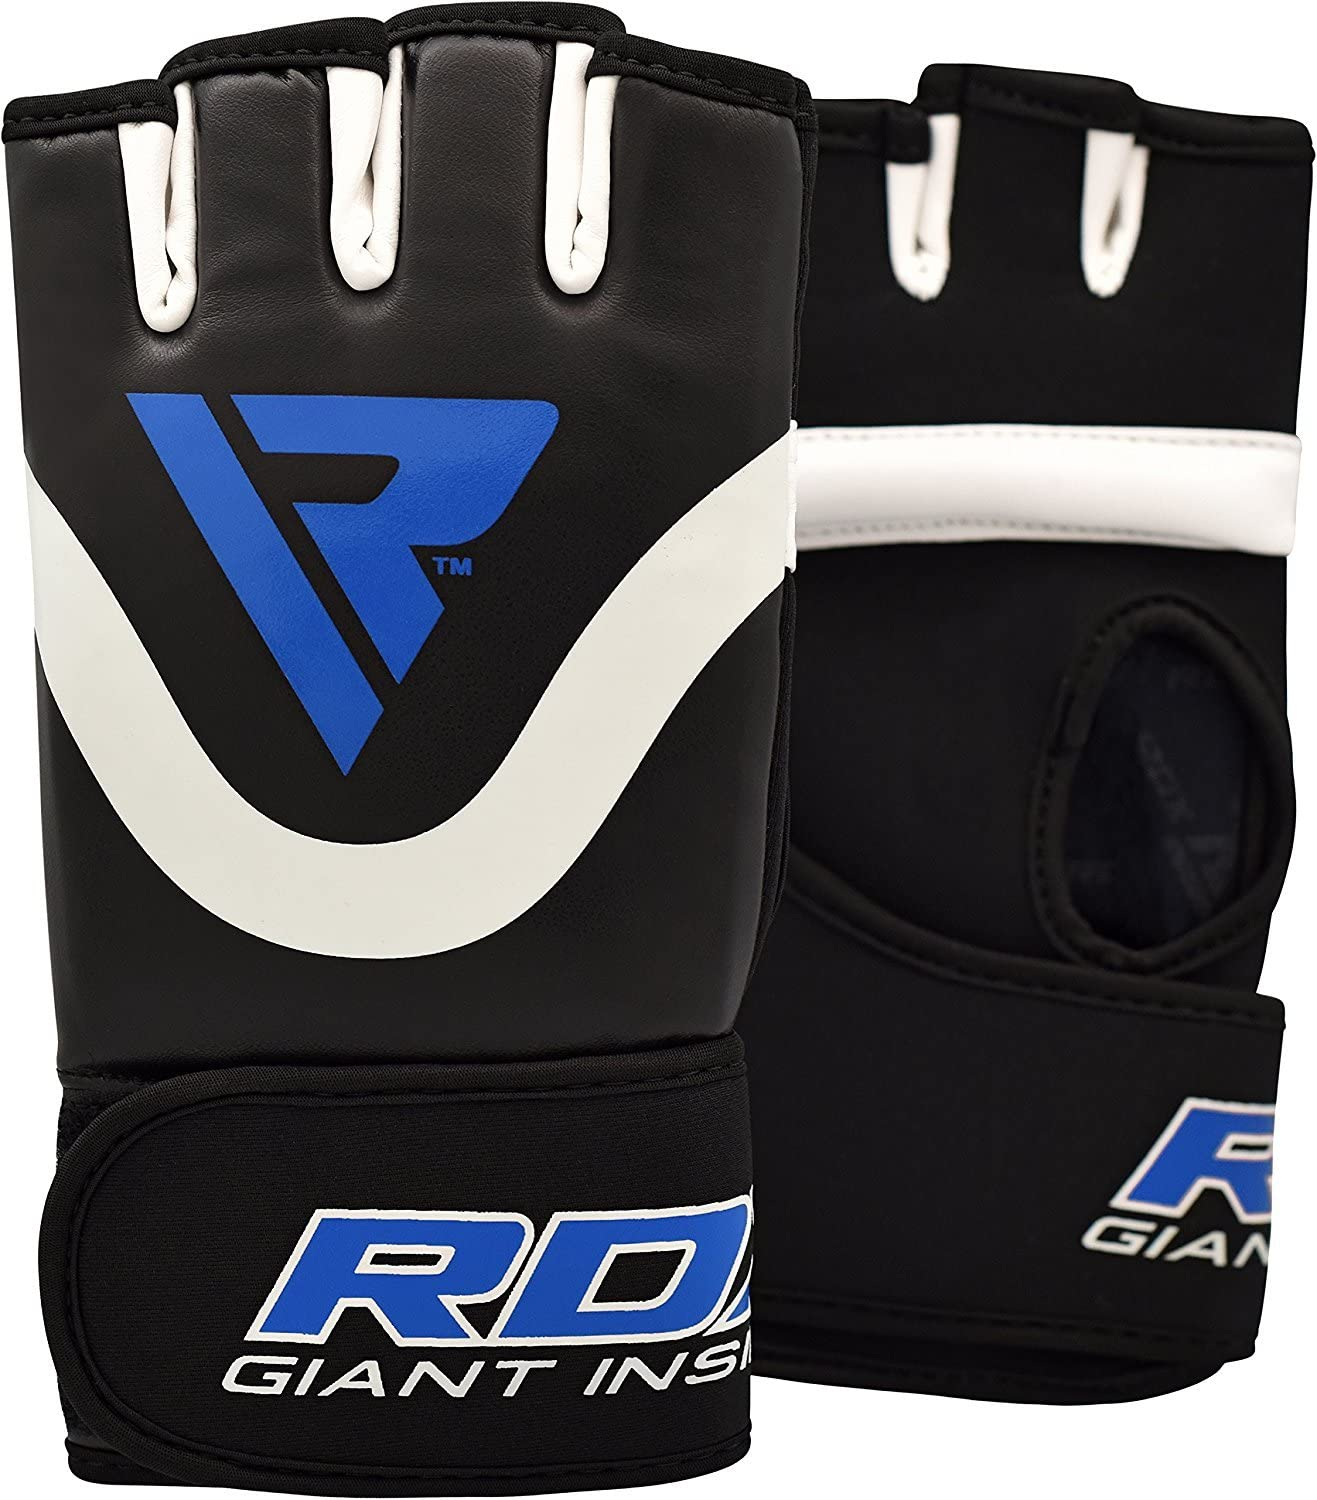 RDX Boxing Hand Wraps Inner Gloves for Punching Heavy Bag Martial Arts Maya Hide Leather Fist Protector under Mitts Kickboxing Multi-Purpose Training /& Combat Sports Muay Thai Great for MMA